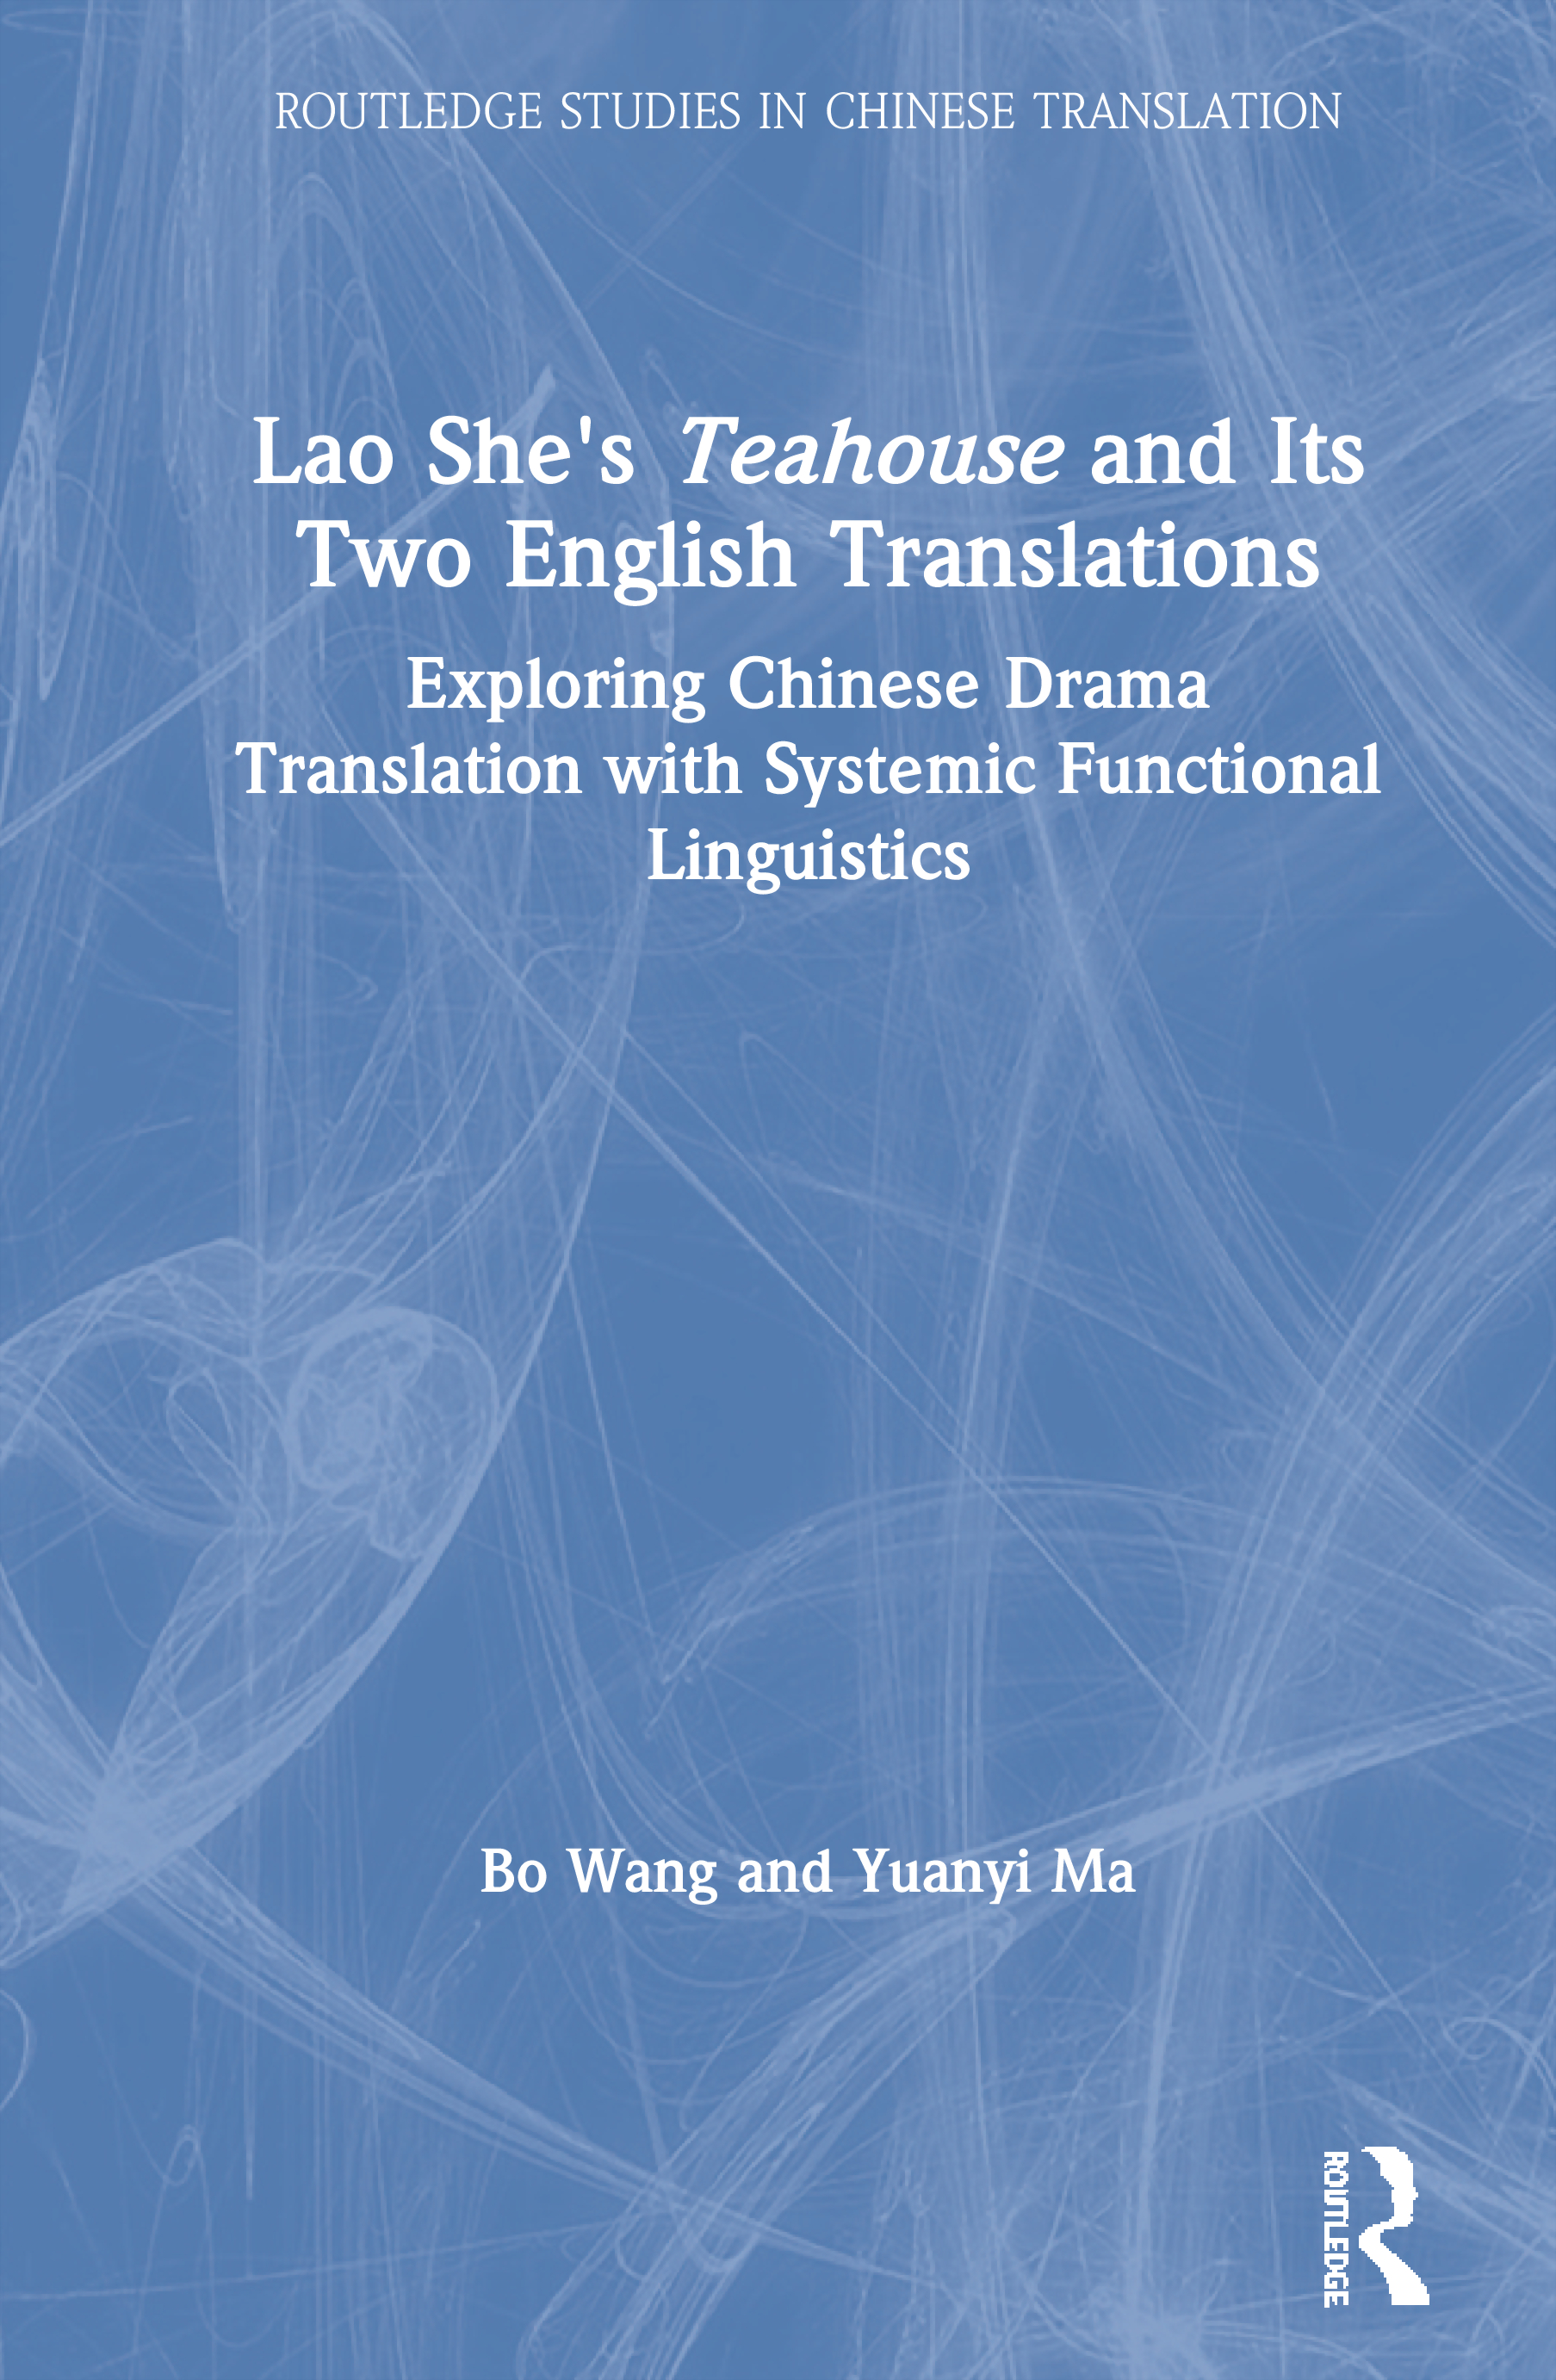 Lao She's Teahouse and its Two English Translations: Exploring Chinese Drama Translation with Systemic Functional Linguistics, 1st Edition (Hardback) book cover